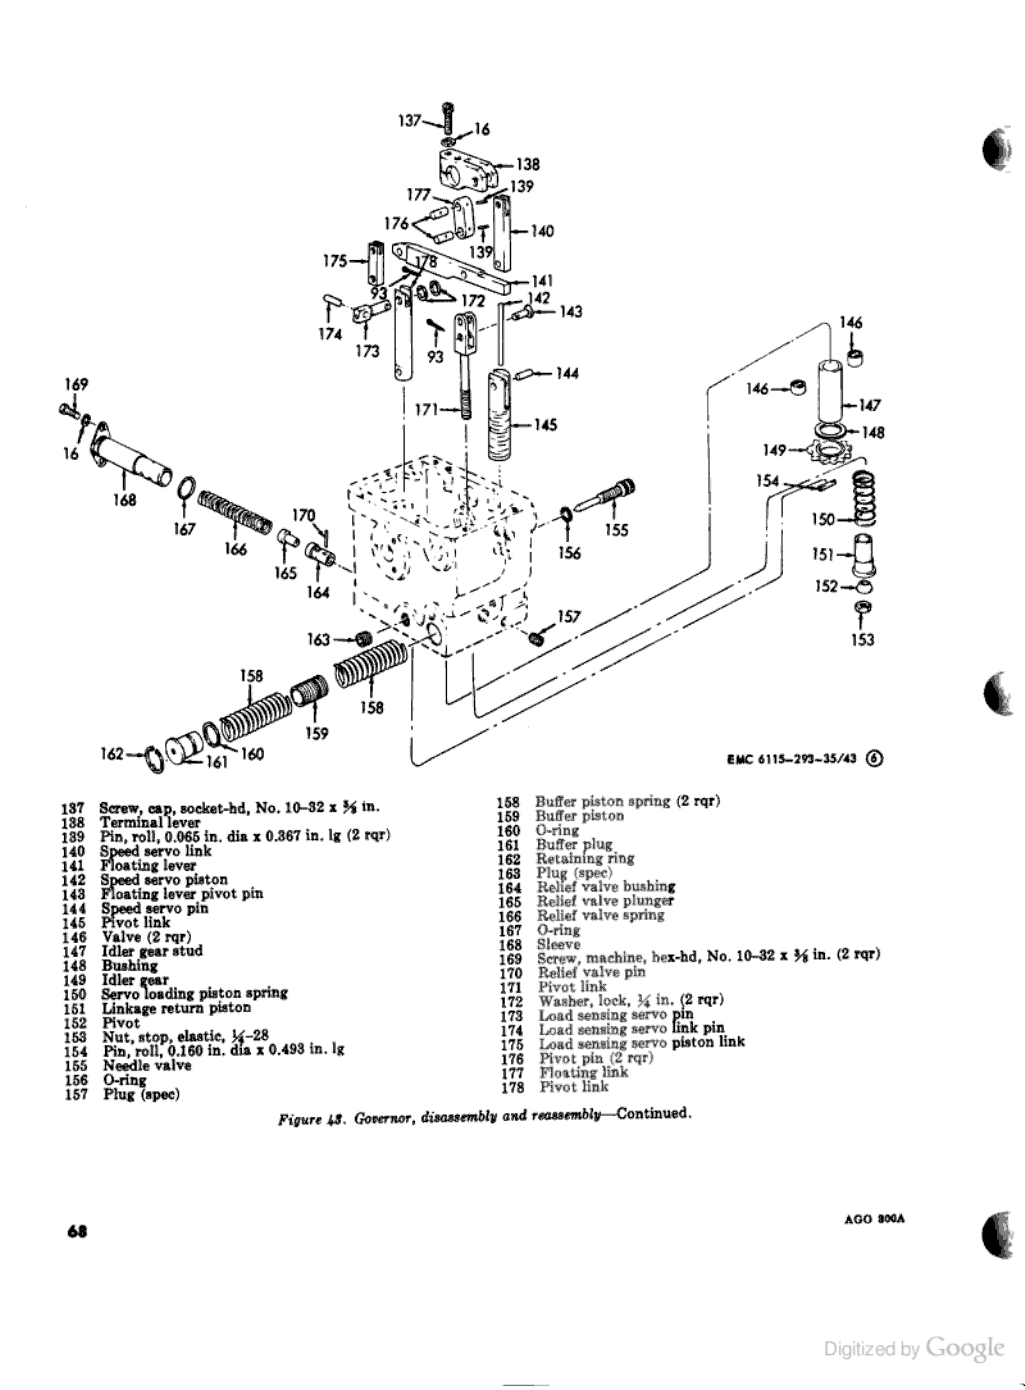 Field and Depot Maintenance Manual (With images